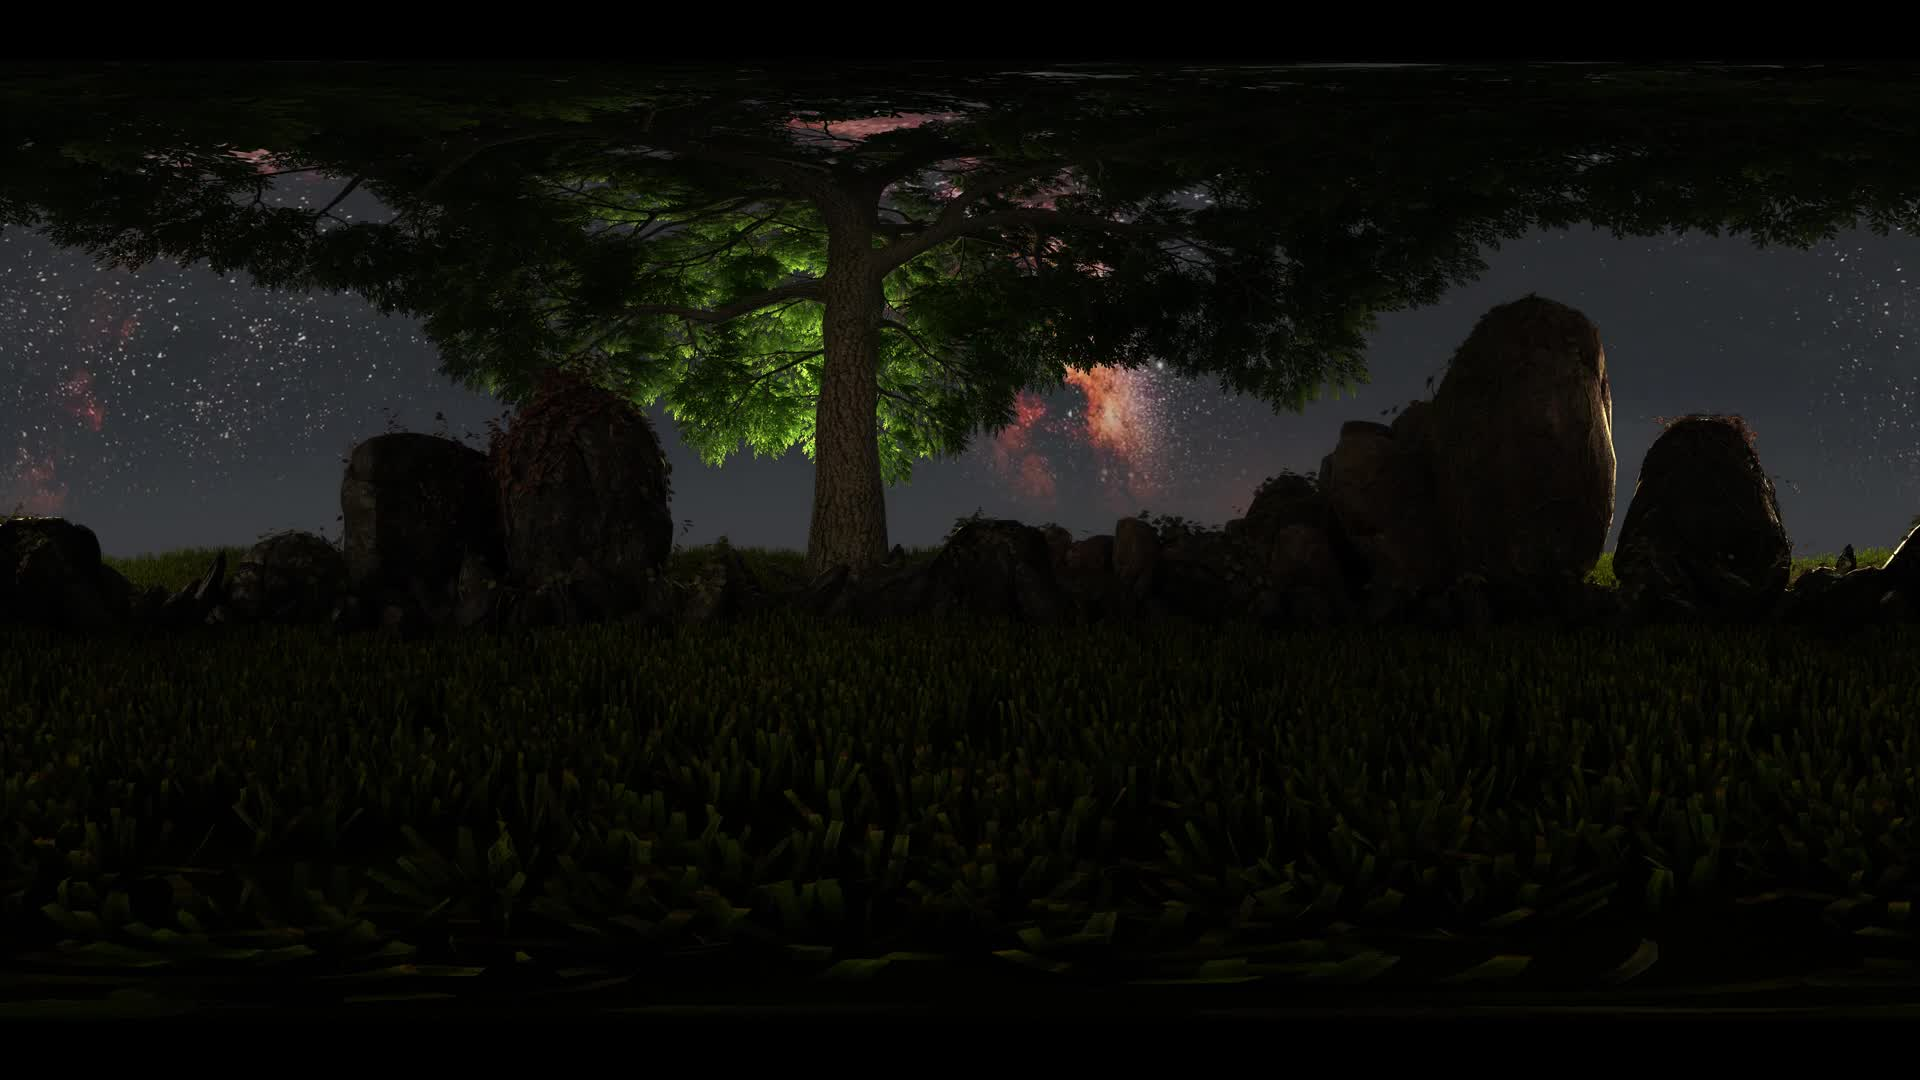 5K Milky Way stars at sunrise and tree virtual reality 360 degree video. Elements of this image furnished by NASA